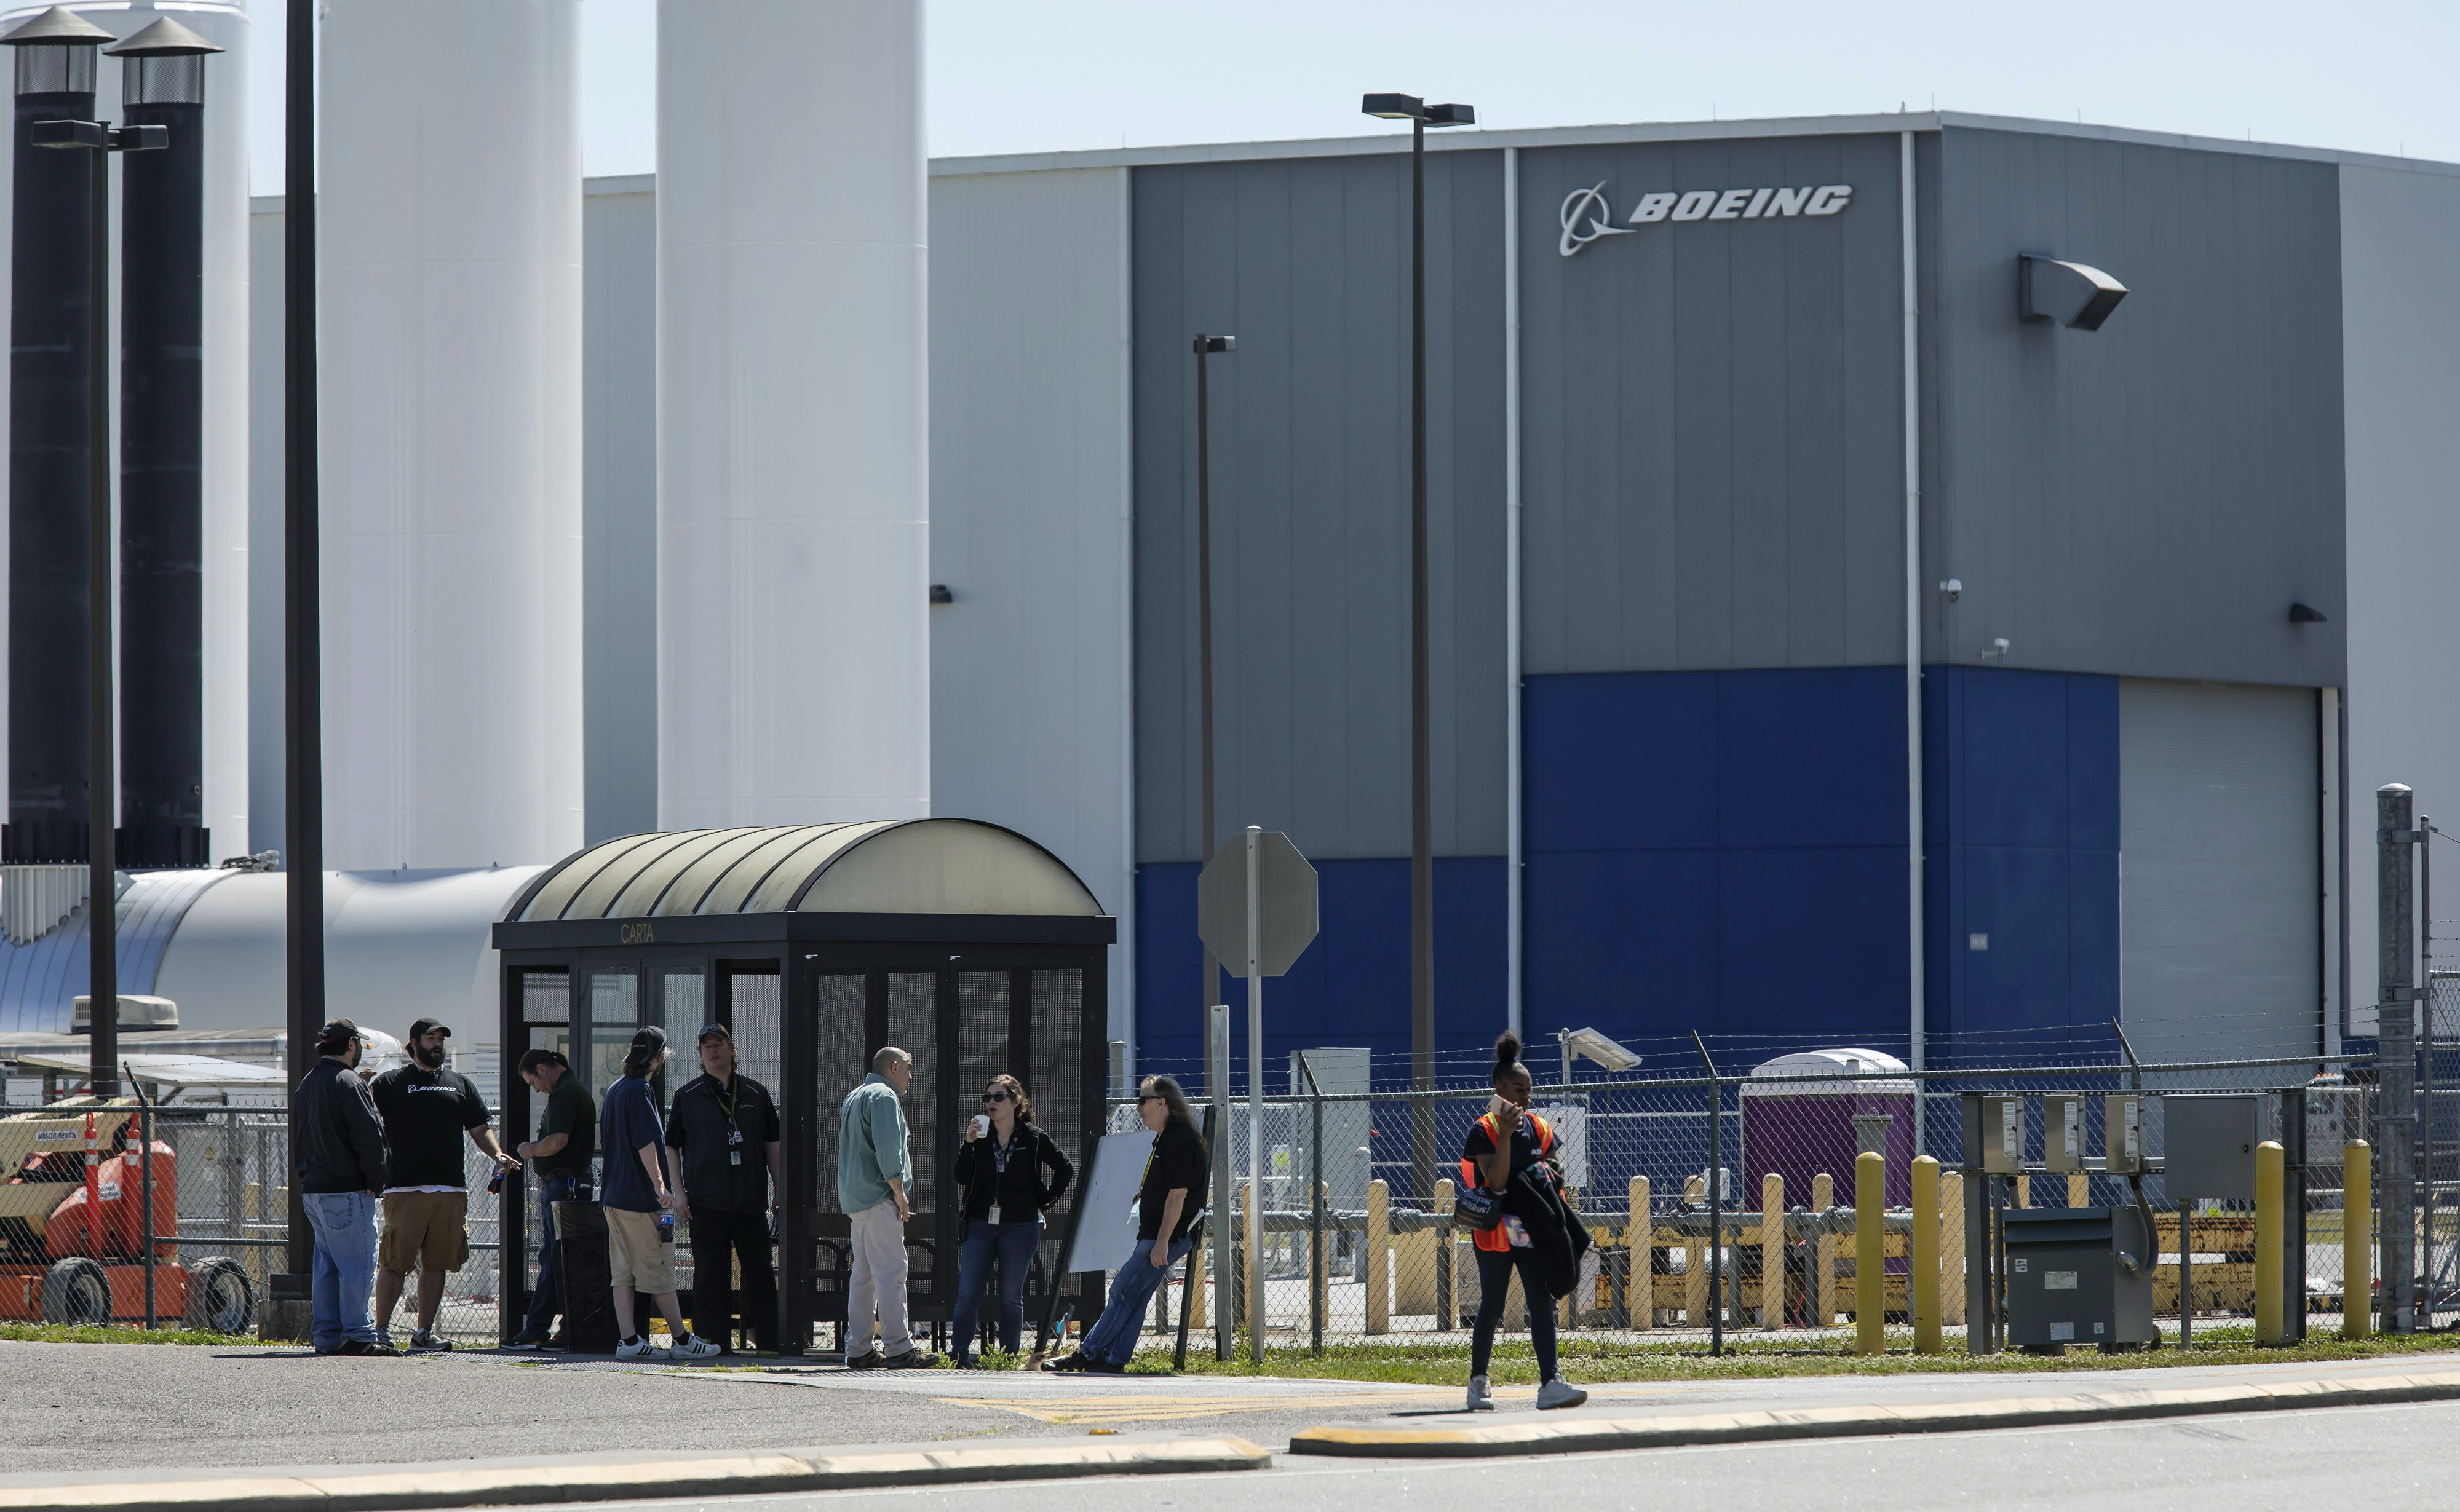 Workers stand outside the Boeing Co. manufacturing facility in North Charleston, South Carolina, U.S., on Monday, May 4, 2020. Boeing is restarting its 787 operations at the plant for the first time since April 8, including all operations that were suspended because of the Covid-19 pandemic, ABC News reported. Photographer: Sam Wolfe/Bloomberg via Getty Images